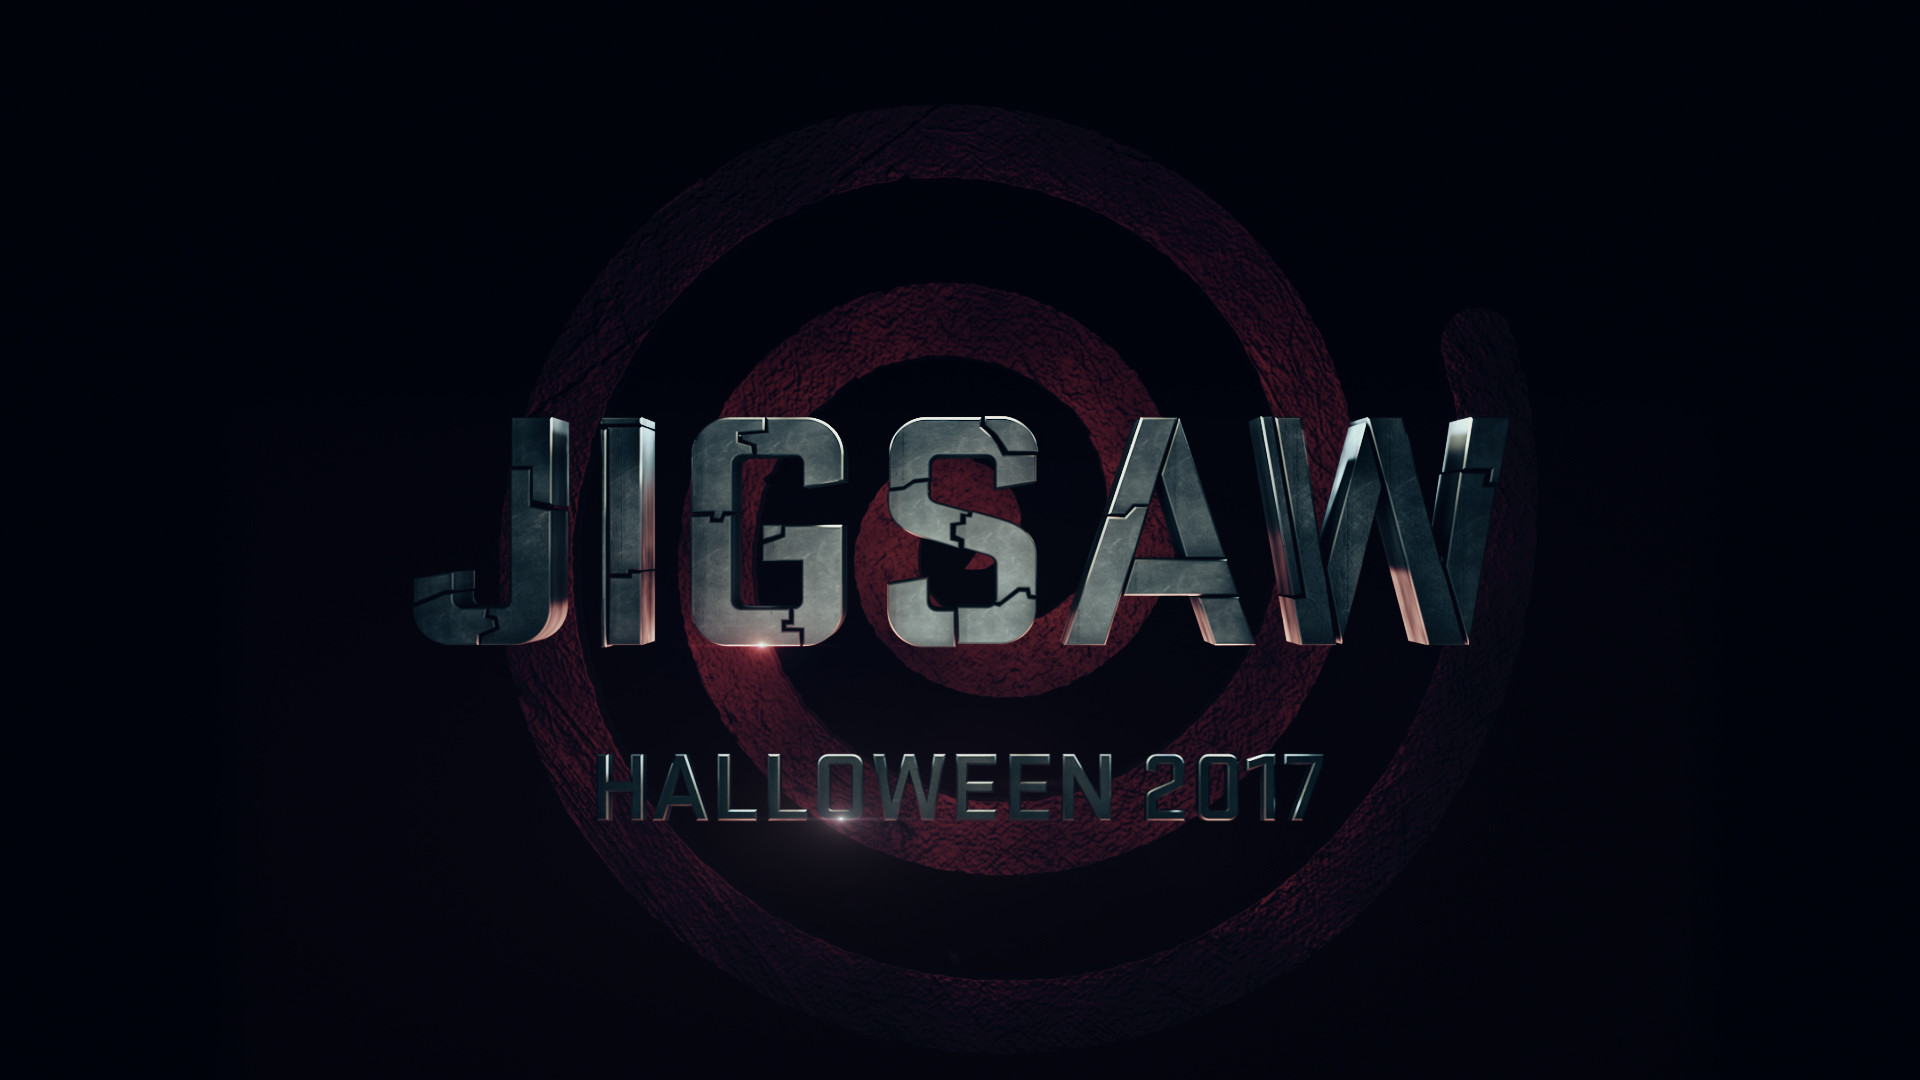 Saw movie wallpaper 68 images - Jigsaw wallpaper ...